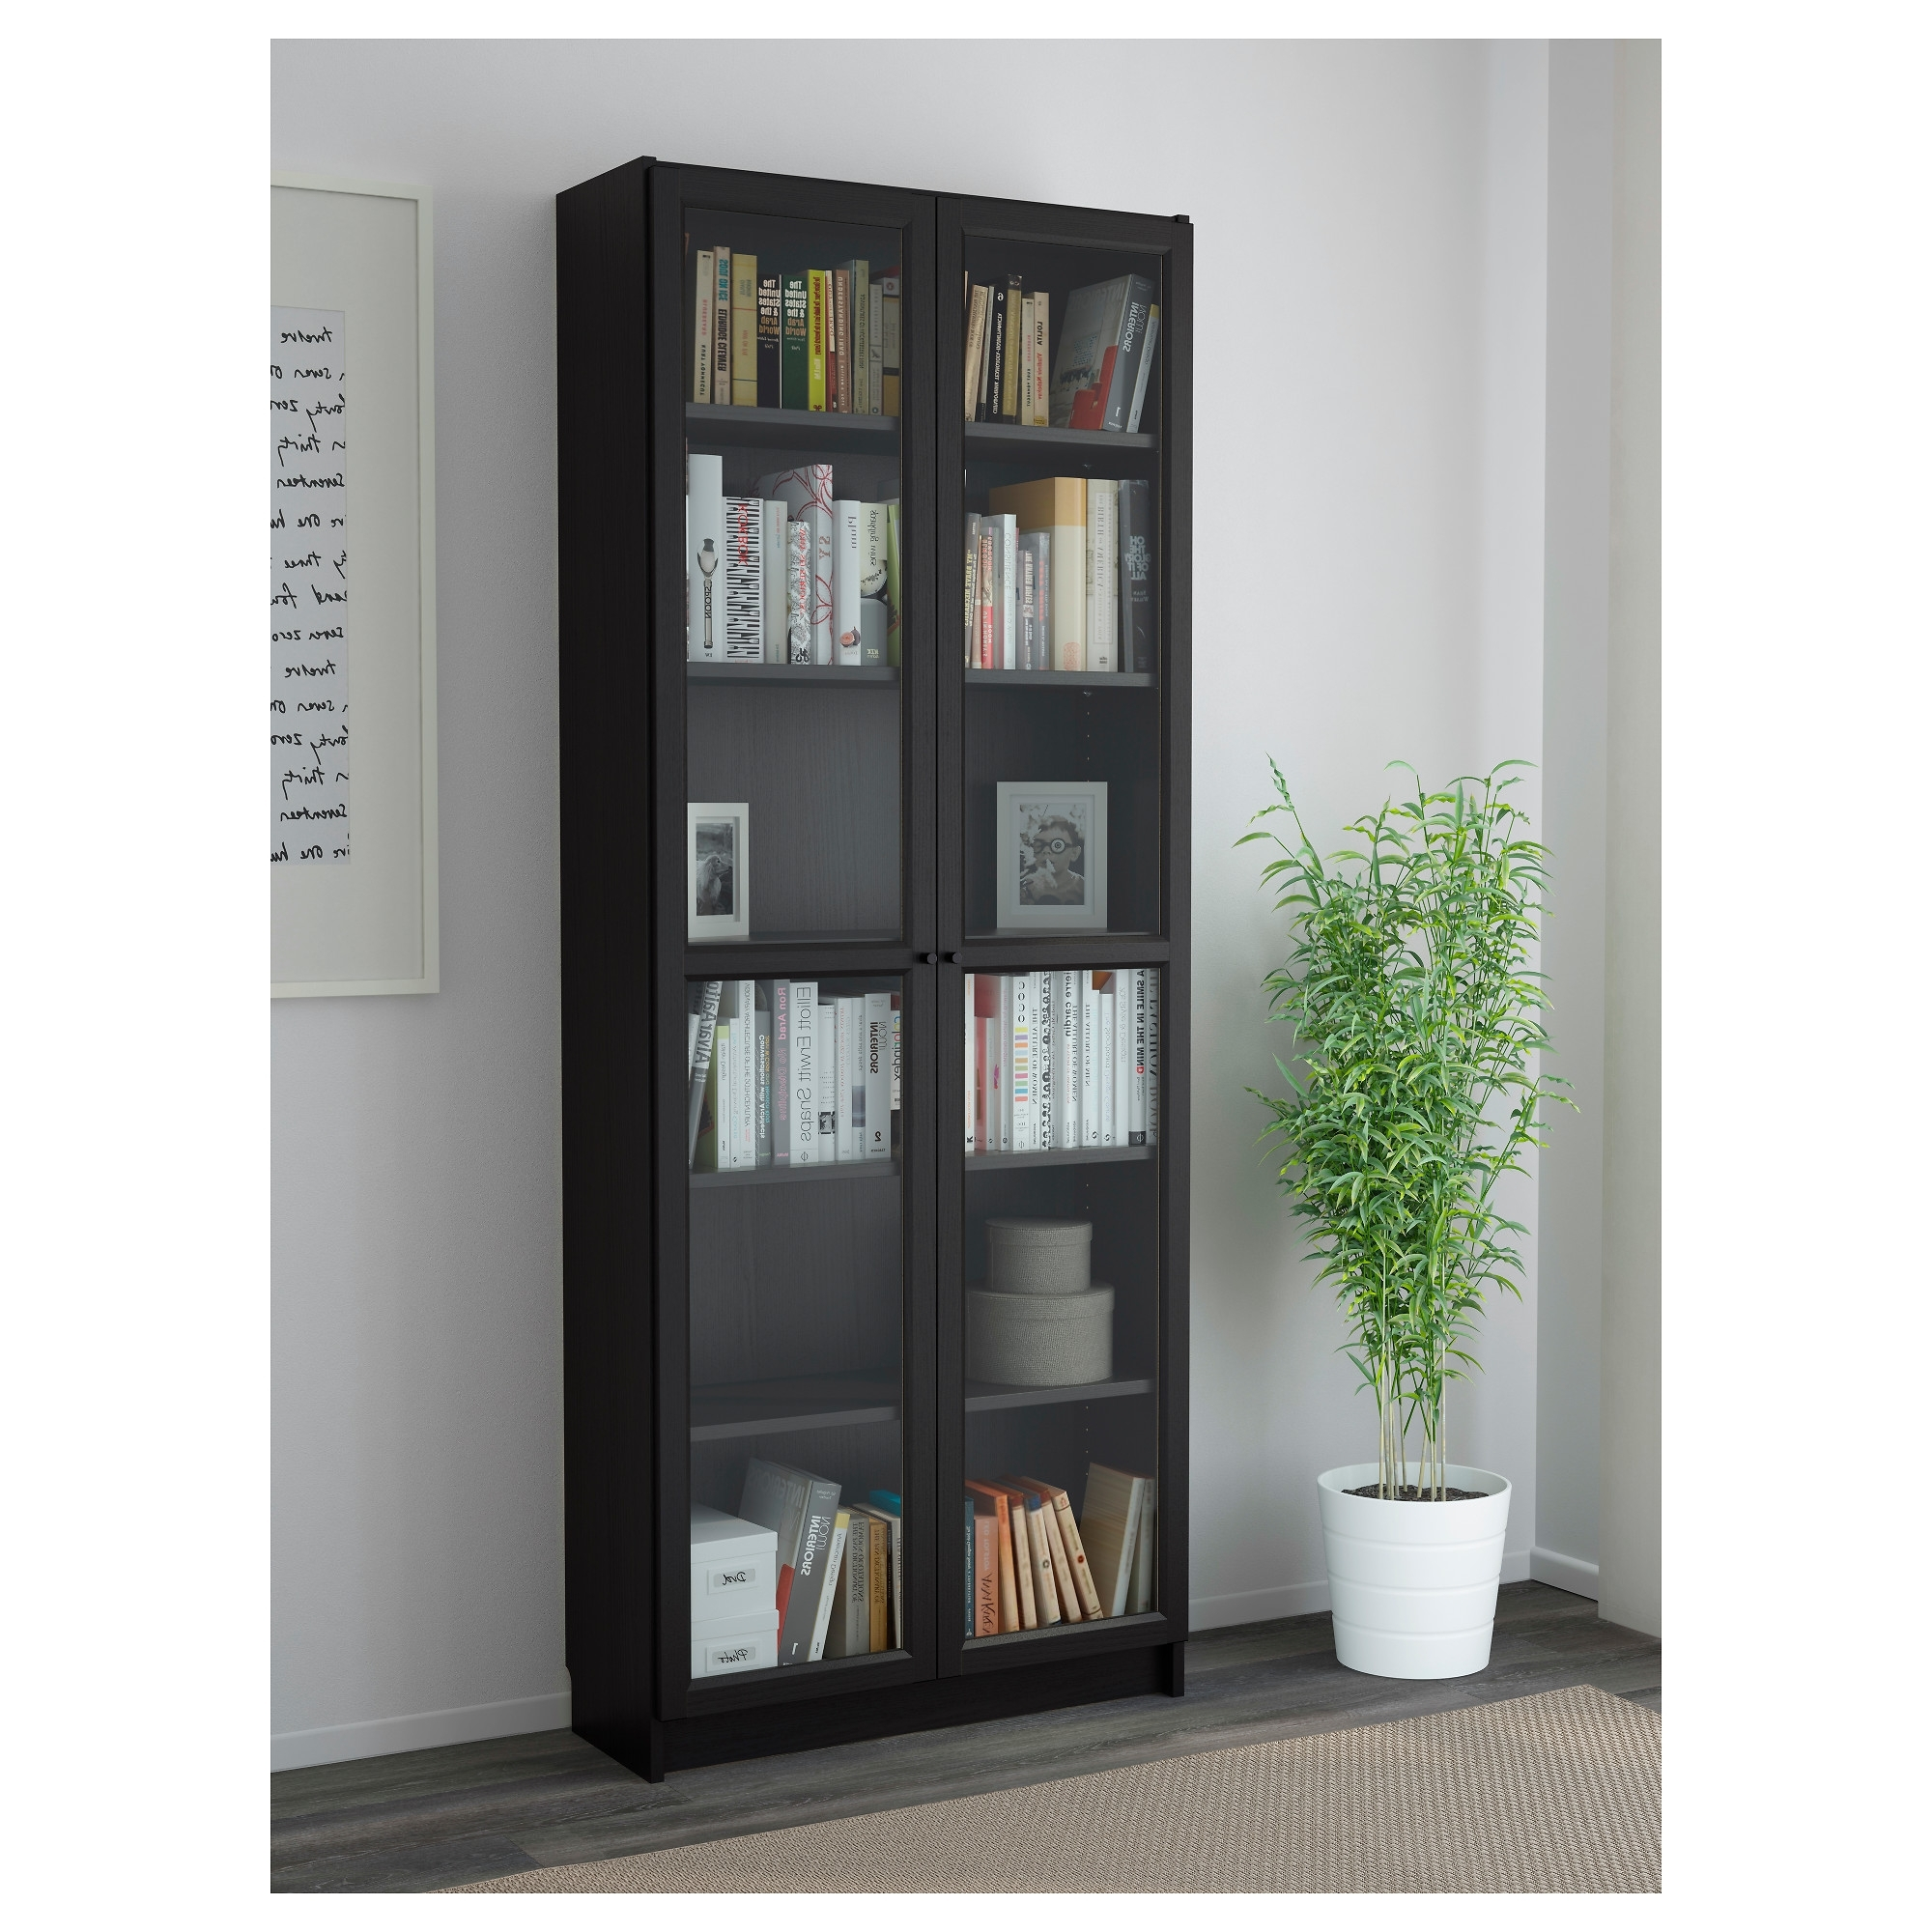 Most Popular Black Corner Bookcases With Ikea Black Corner Bookcase Tags : Ikea Black Bookshelf Jordan Shoe (View 12 of 15)